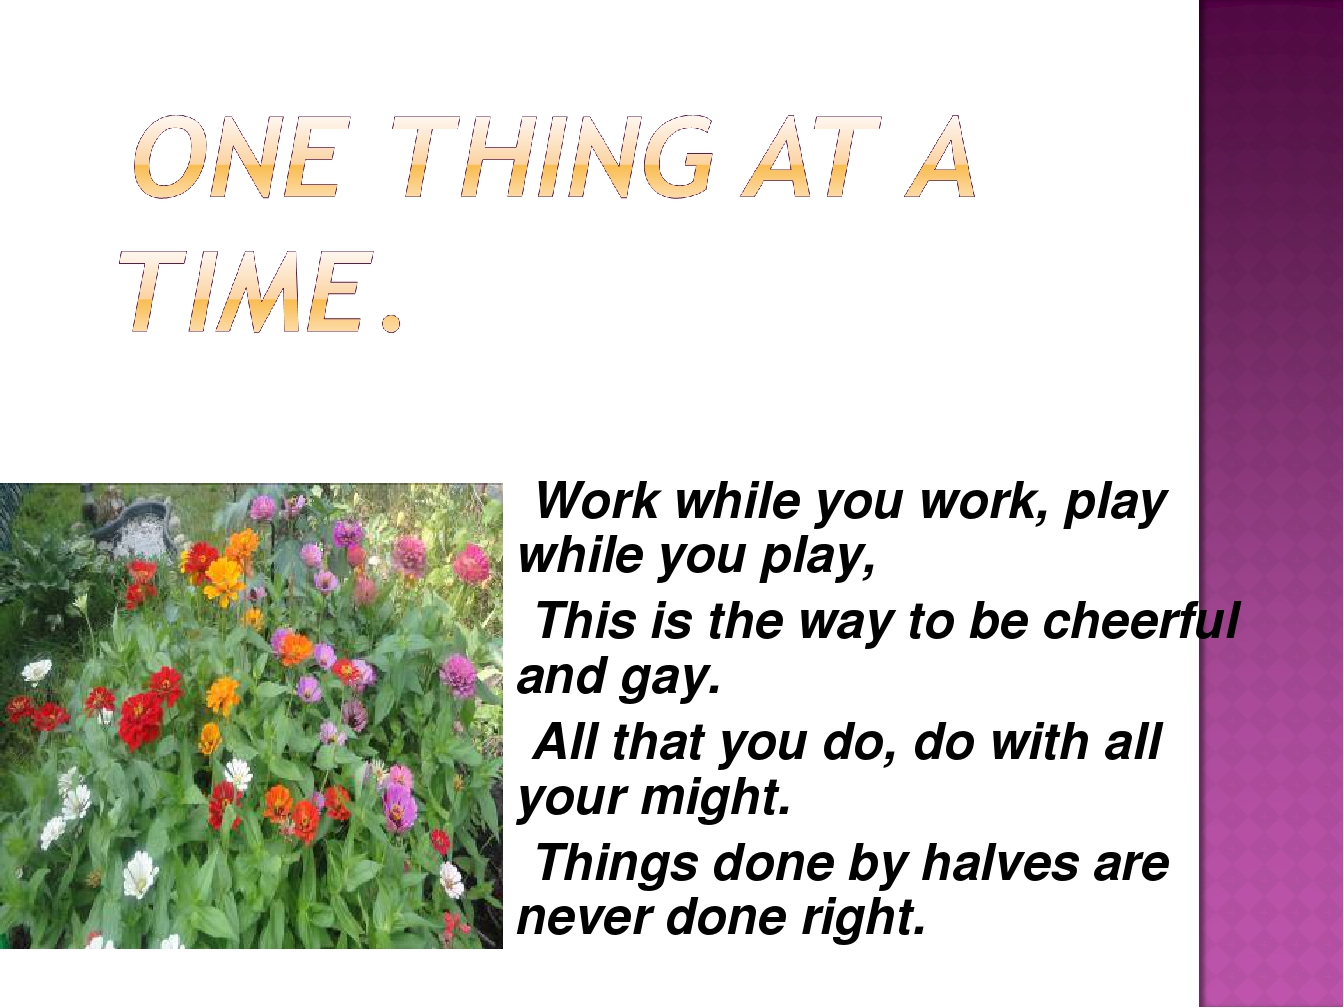 Work while you work, play while you play, This is the way to be cheerful and gay. All that you do, do with all your might. Things done by halves ar...